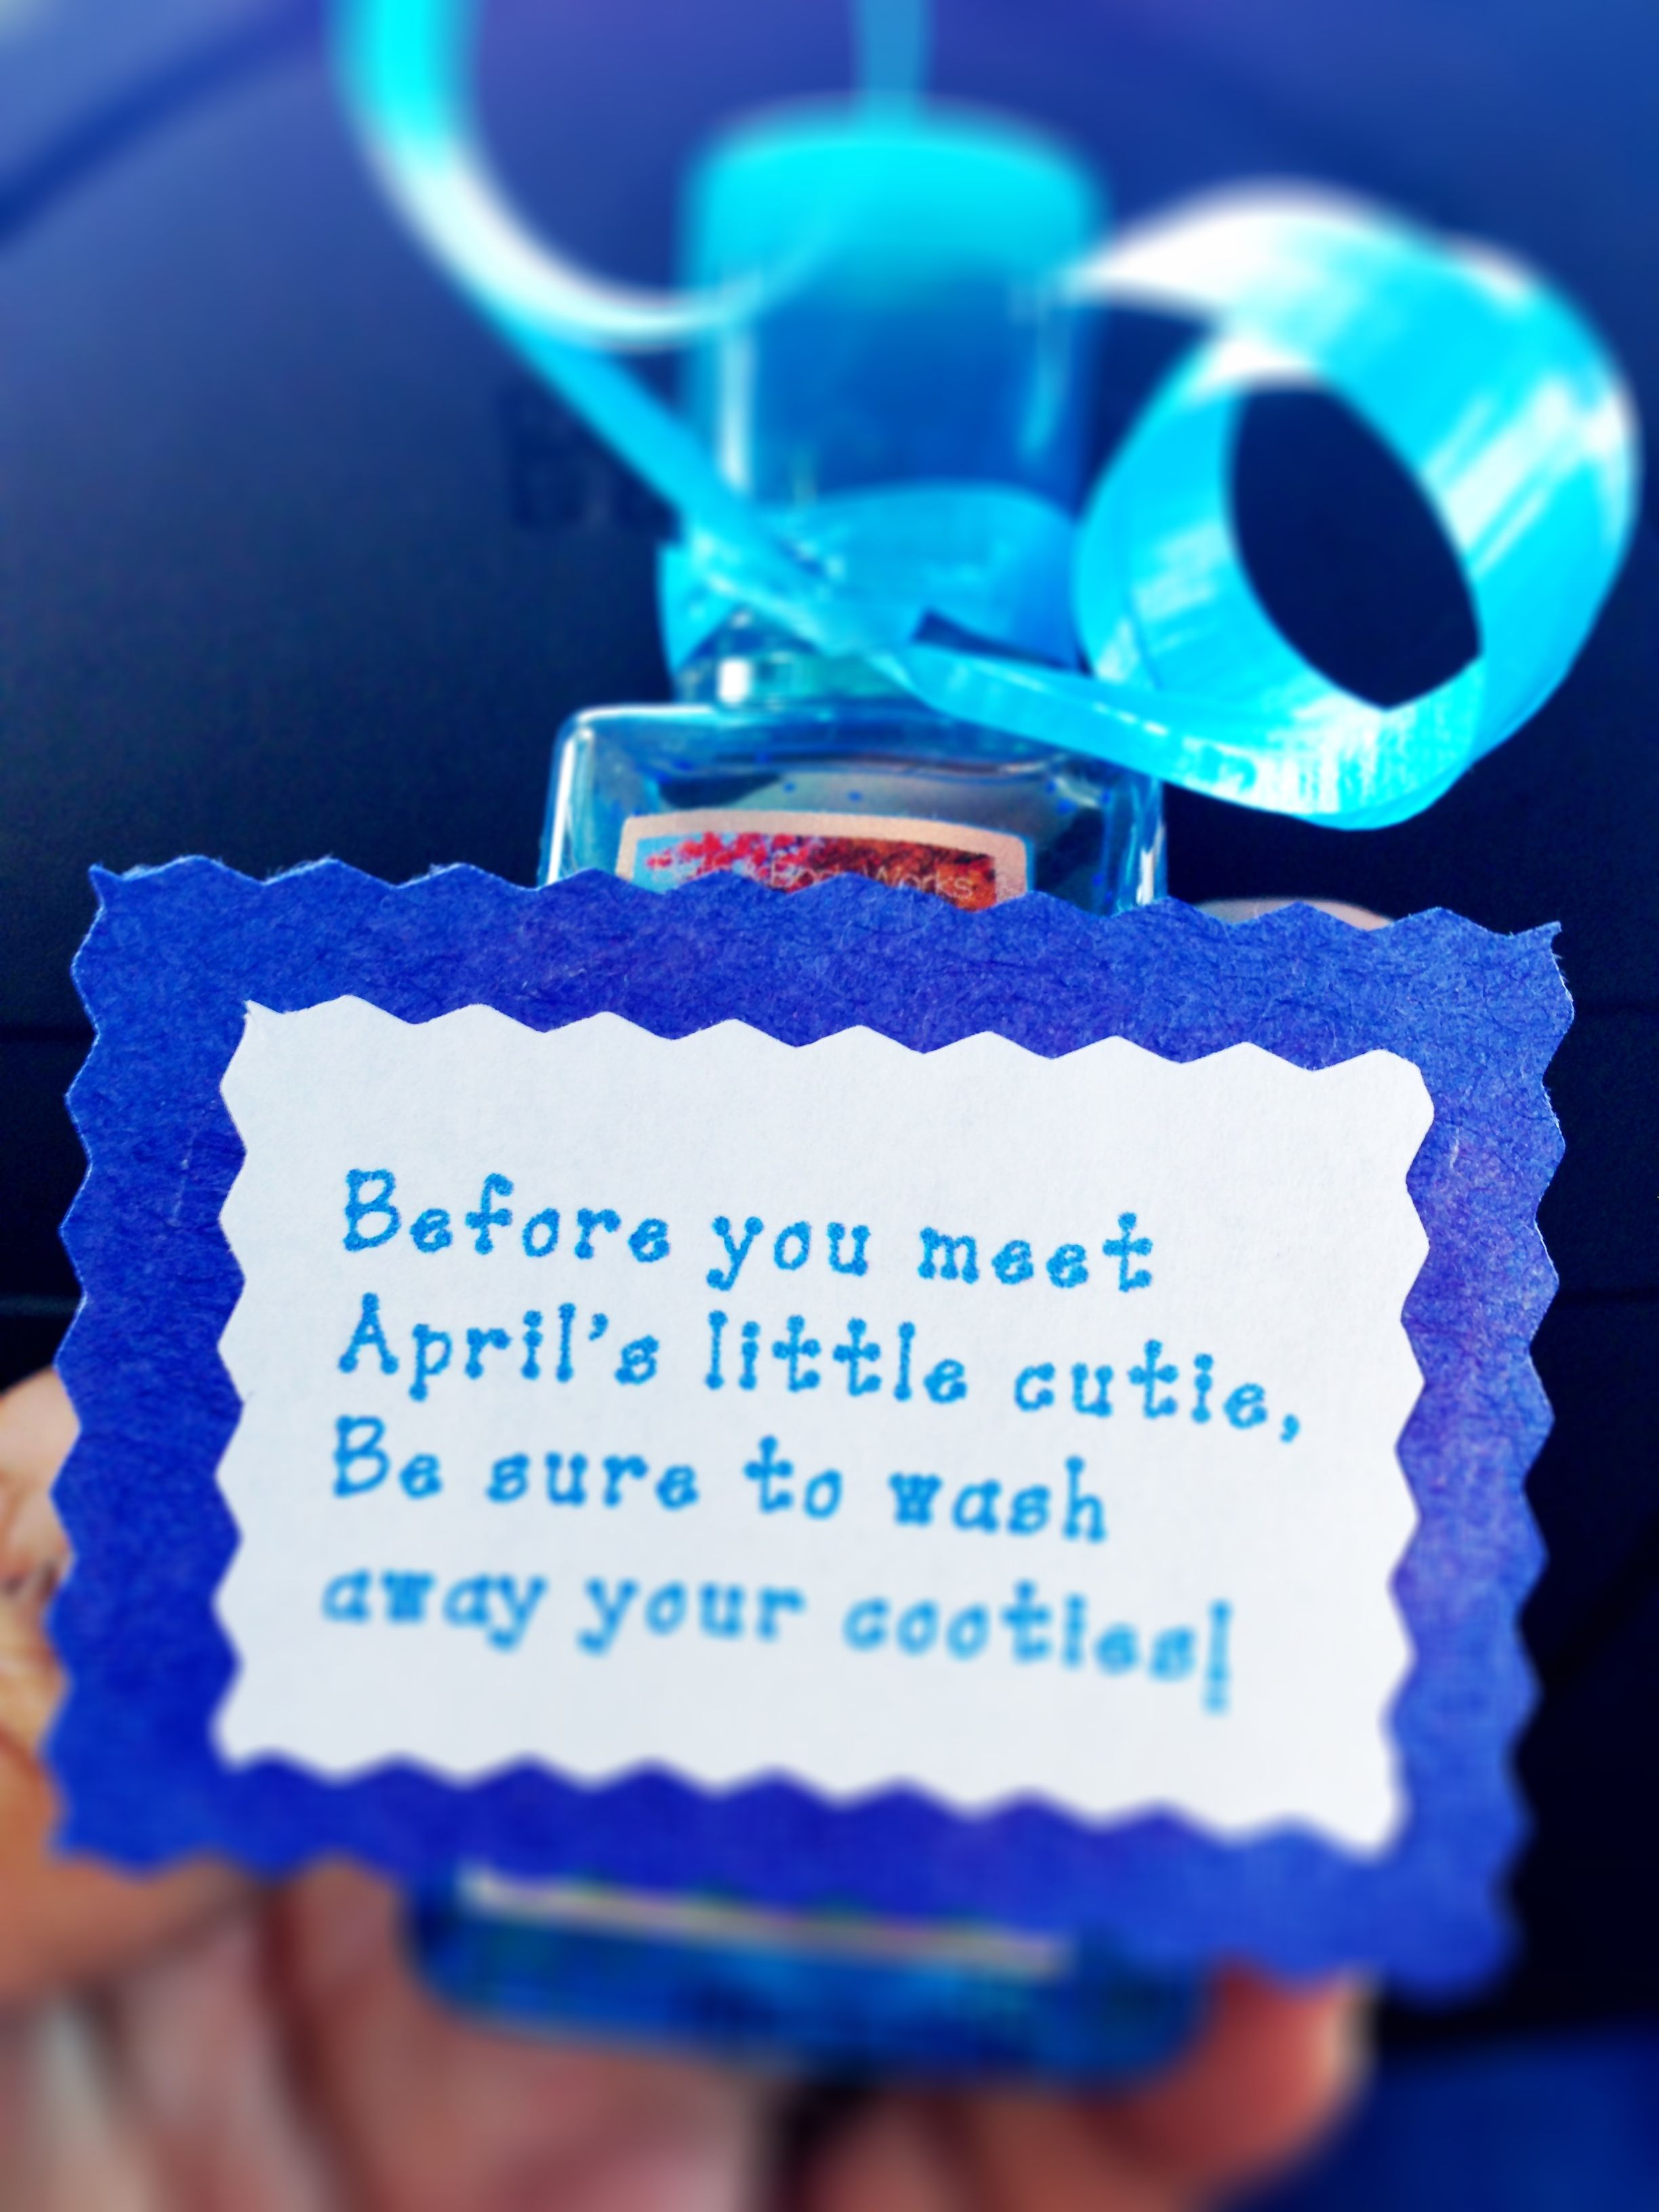 Throwing A Baby Shower? Give A Cute Little Hand Sanitizer As Party Favors!